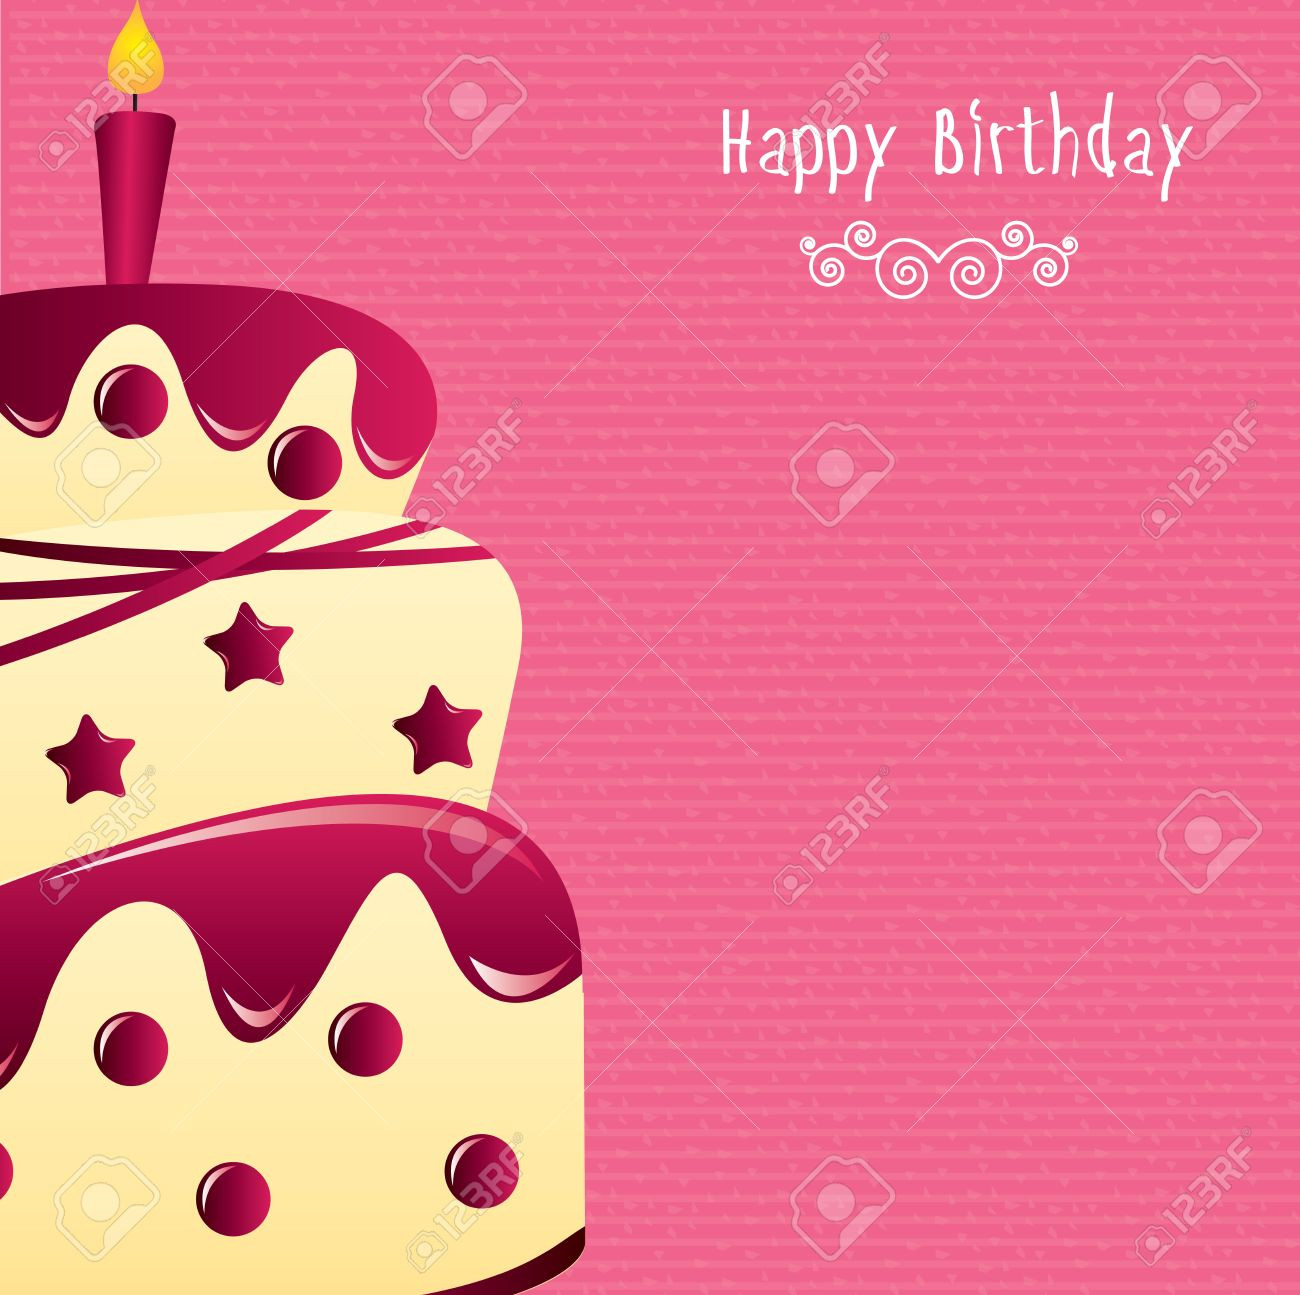 Best ideas about Thoughtful Birthday Wishes . Save or Pin Beautiful and Thoughtful Birthday Wishes to Send to Your Now.